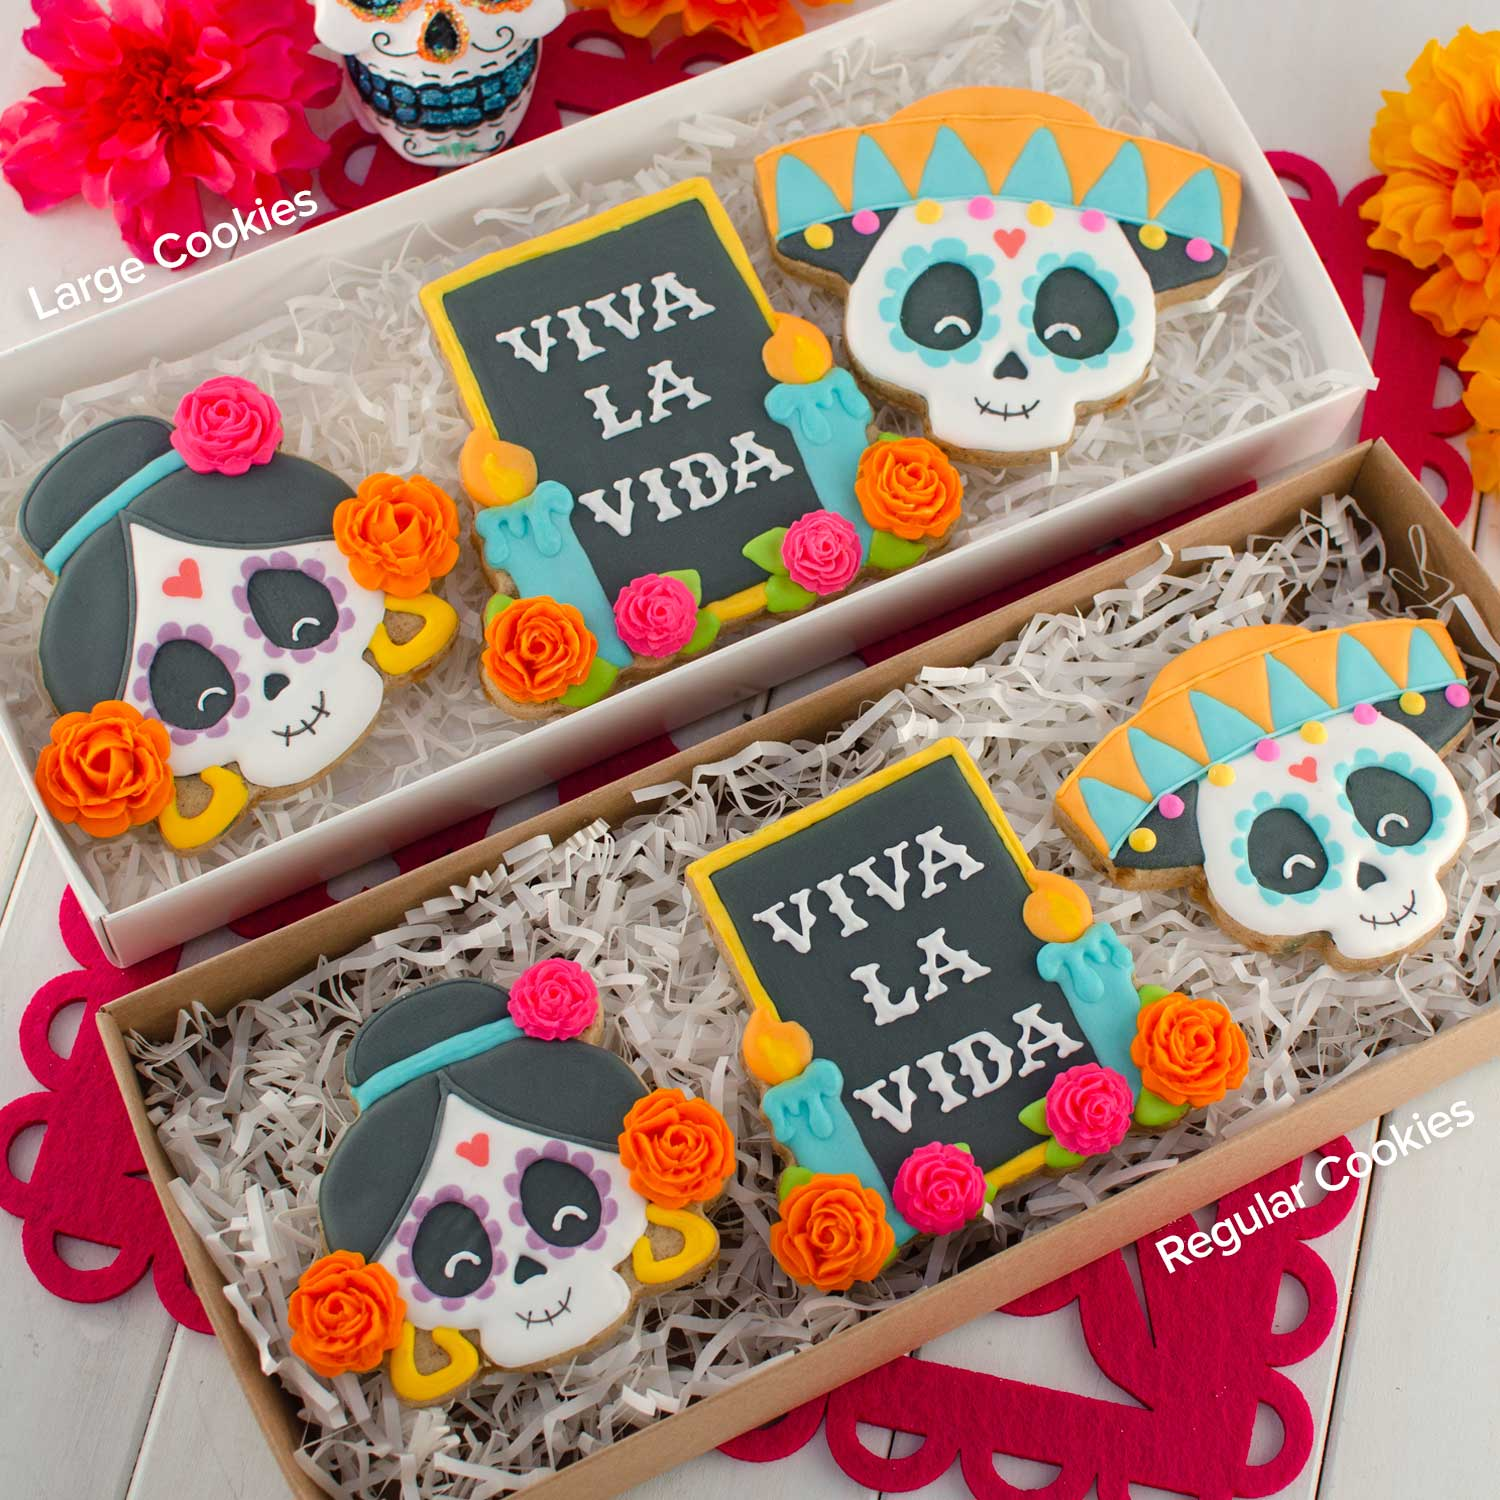 Day of the Dead cookies in a box | Semi Sweet Designs